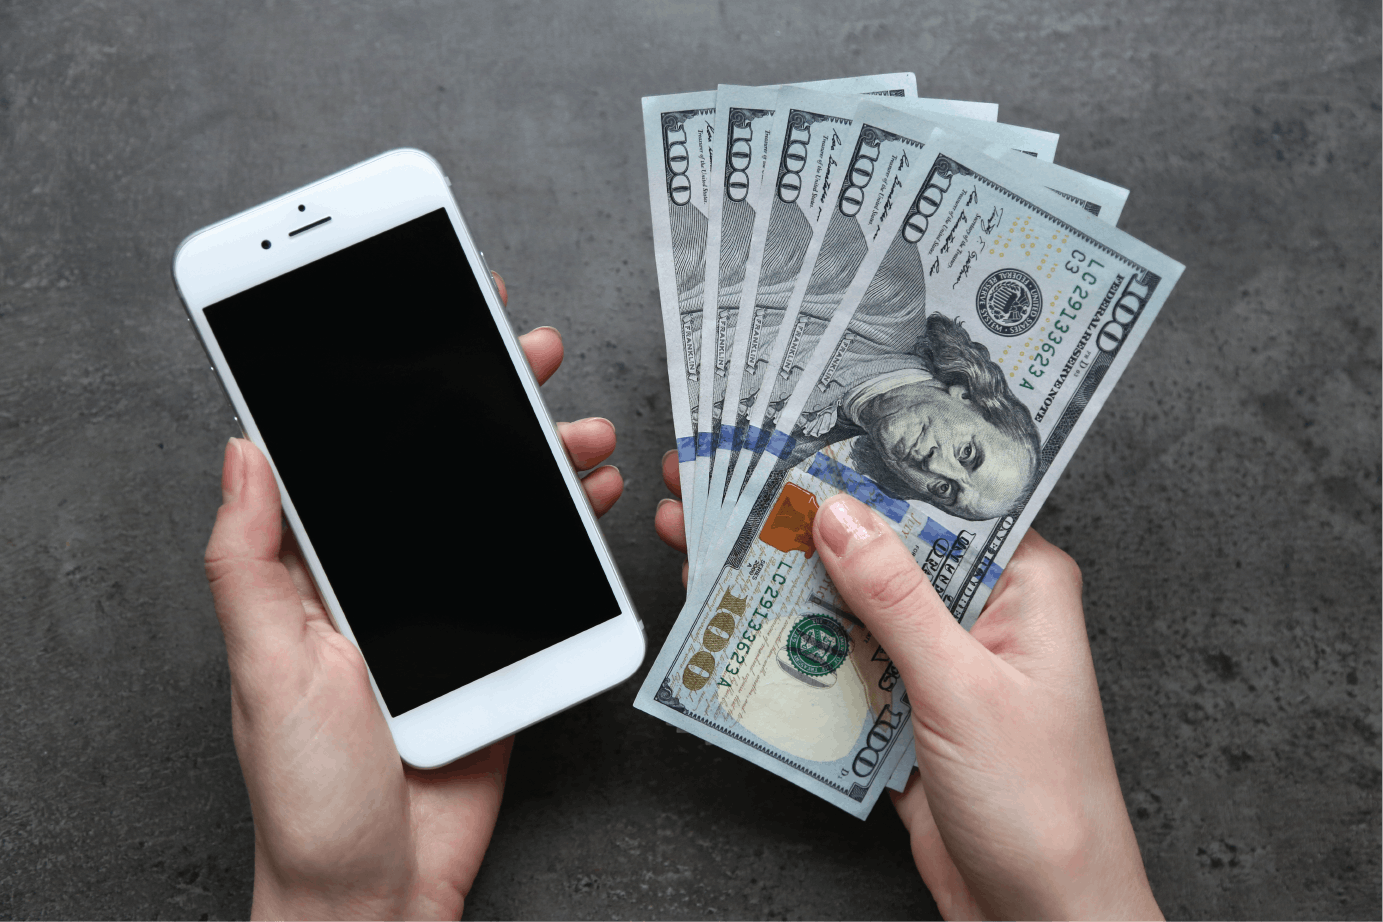 buying a phone with resale value